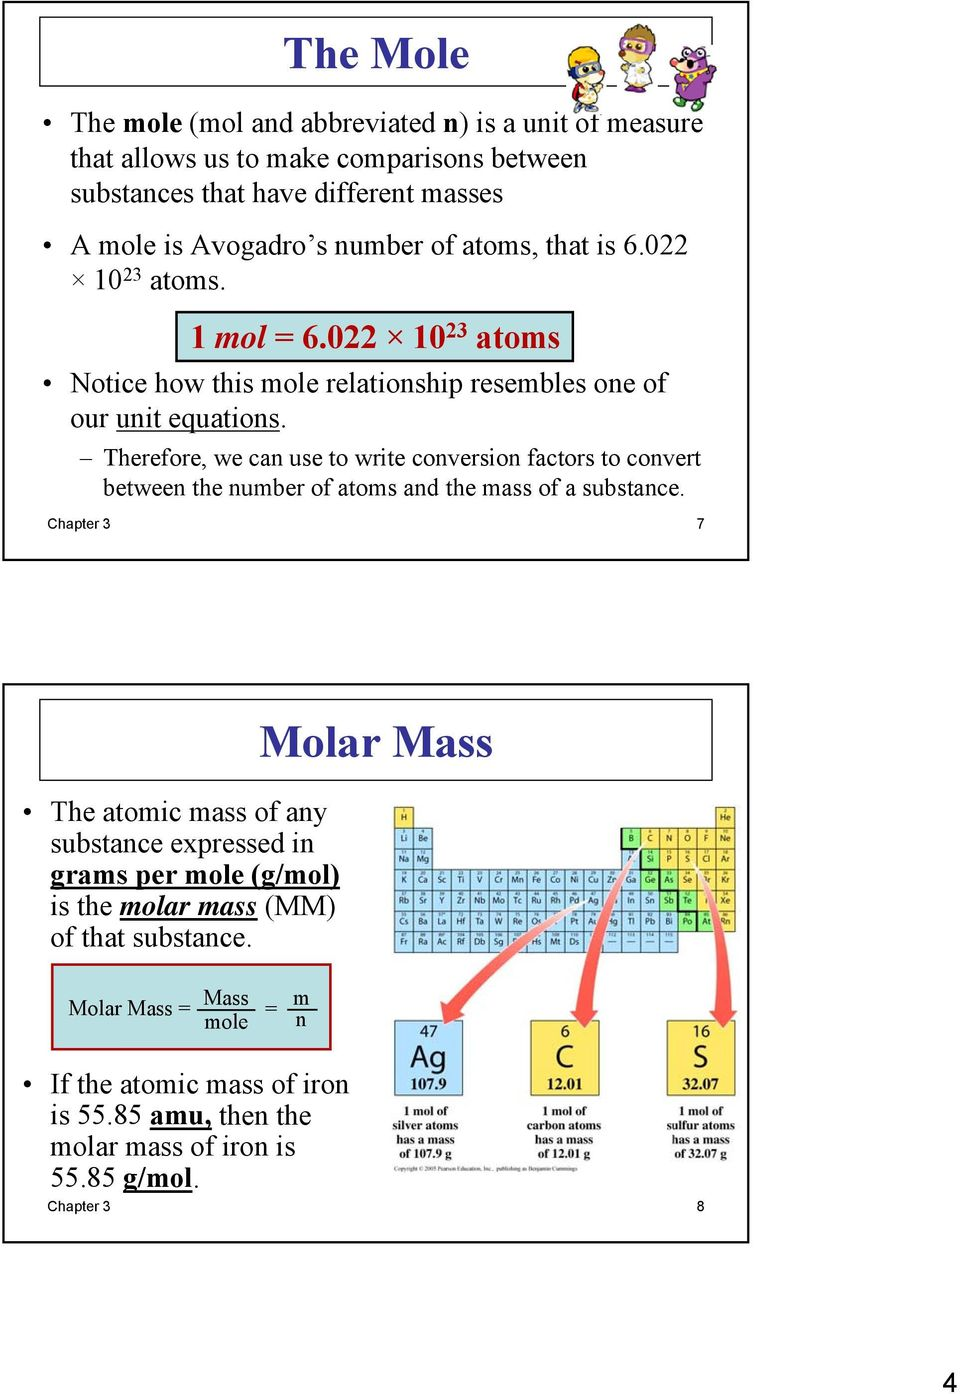 Therefore, we can use to write conversion factors to convert between the number of atoms and the mass of a substance.